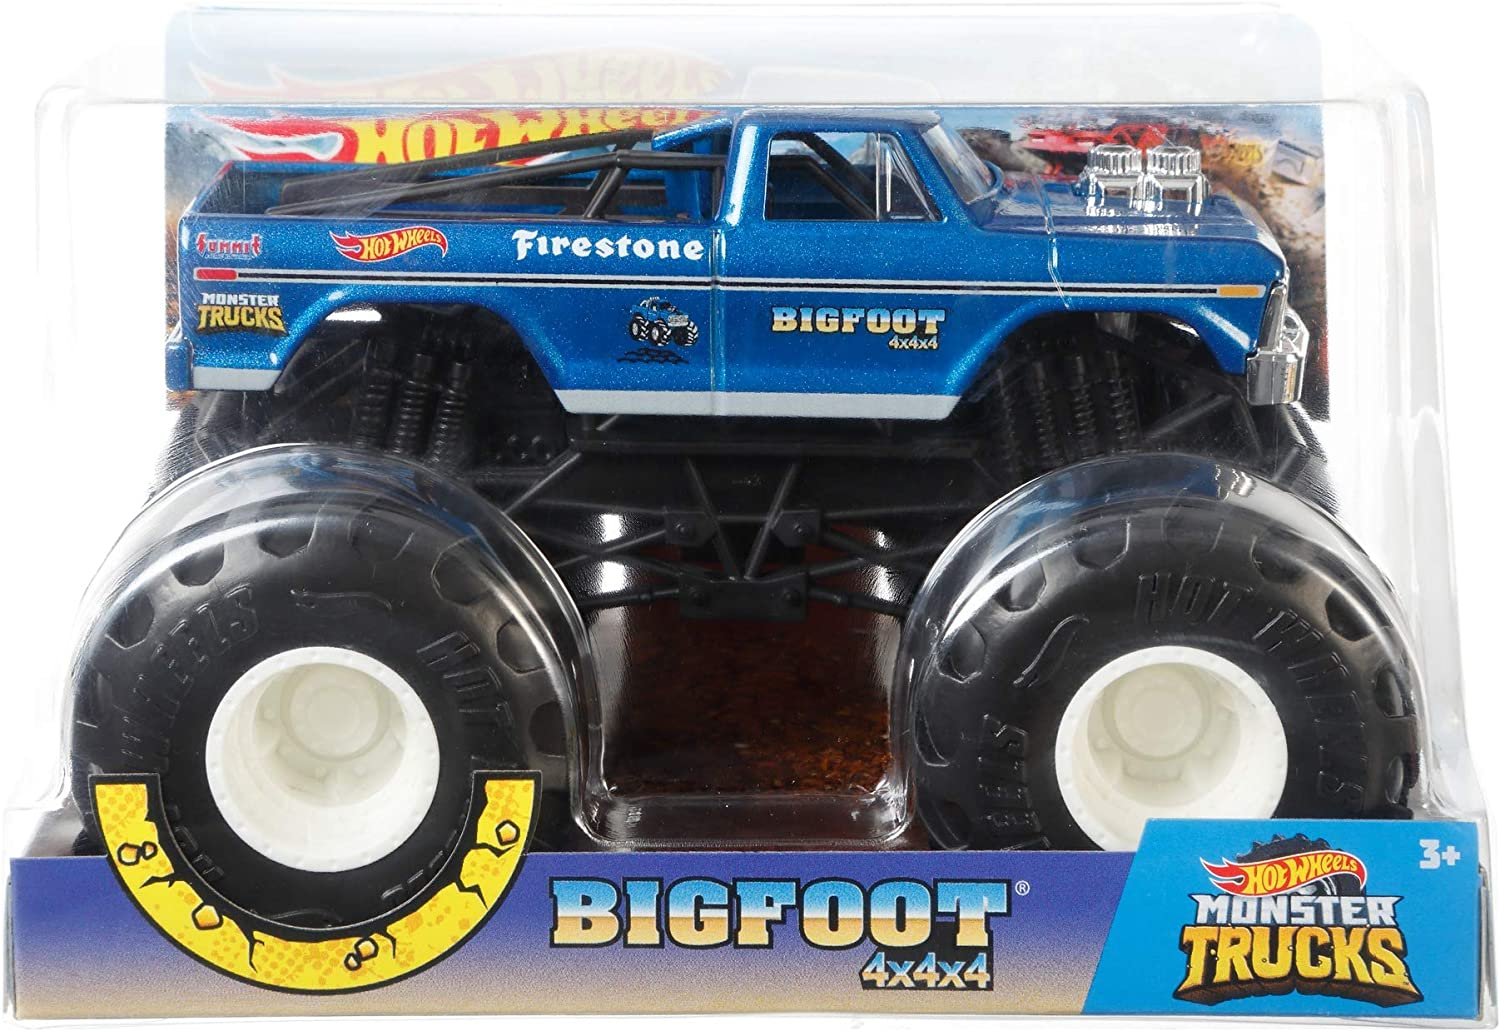 Amazon Com Hot Wheels Monster Trucks Bigfoot Die Cast 1 24 Scale Vehicle With Giant Wheels For Kids Age 3 To 8 Years Old Great Gift Toy Trucks Large Scales Toys Games